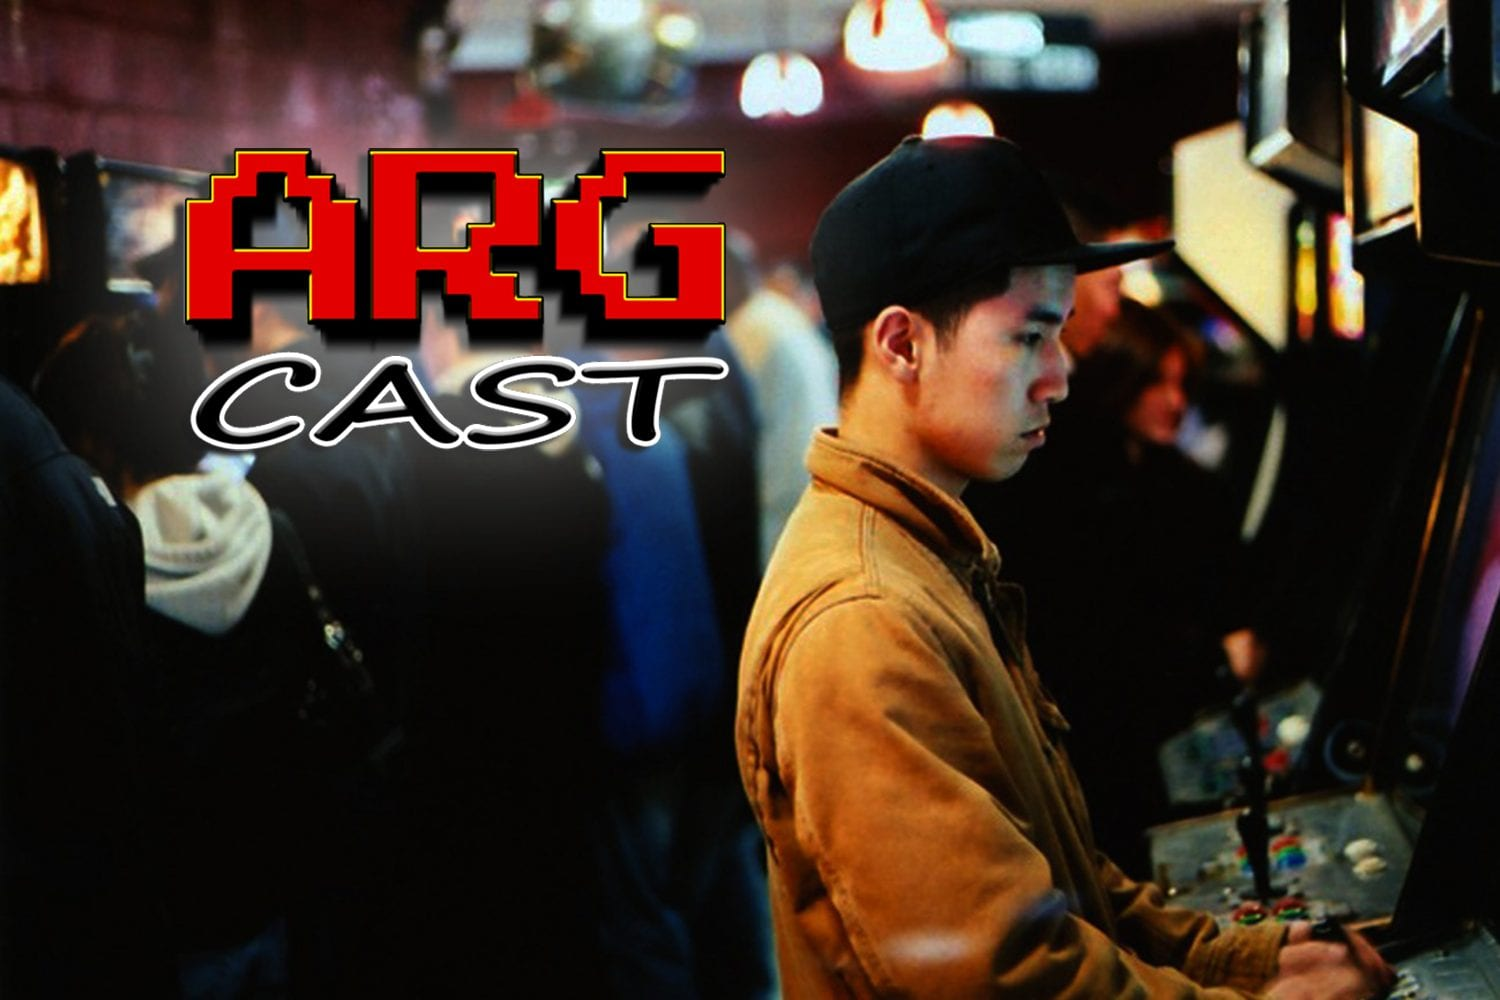 ARGcast #62: Exploring The Lost Arcade with Director Kurt Vincent